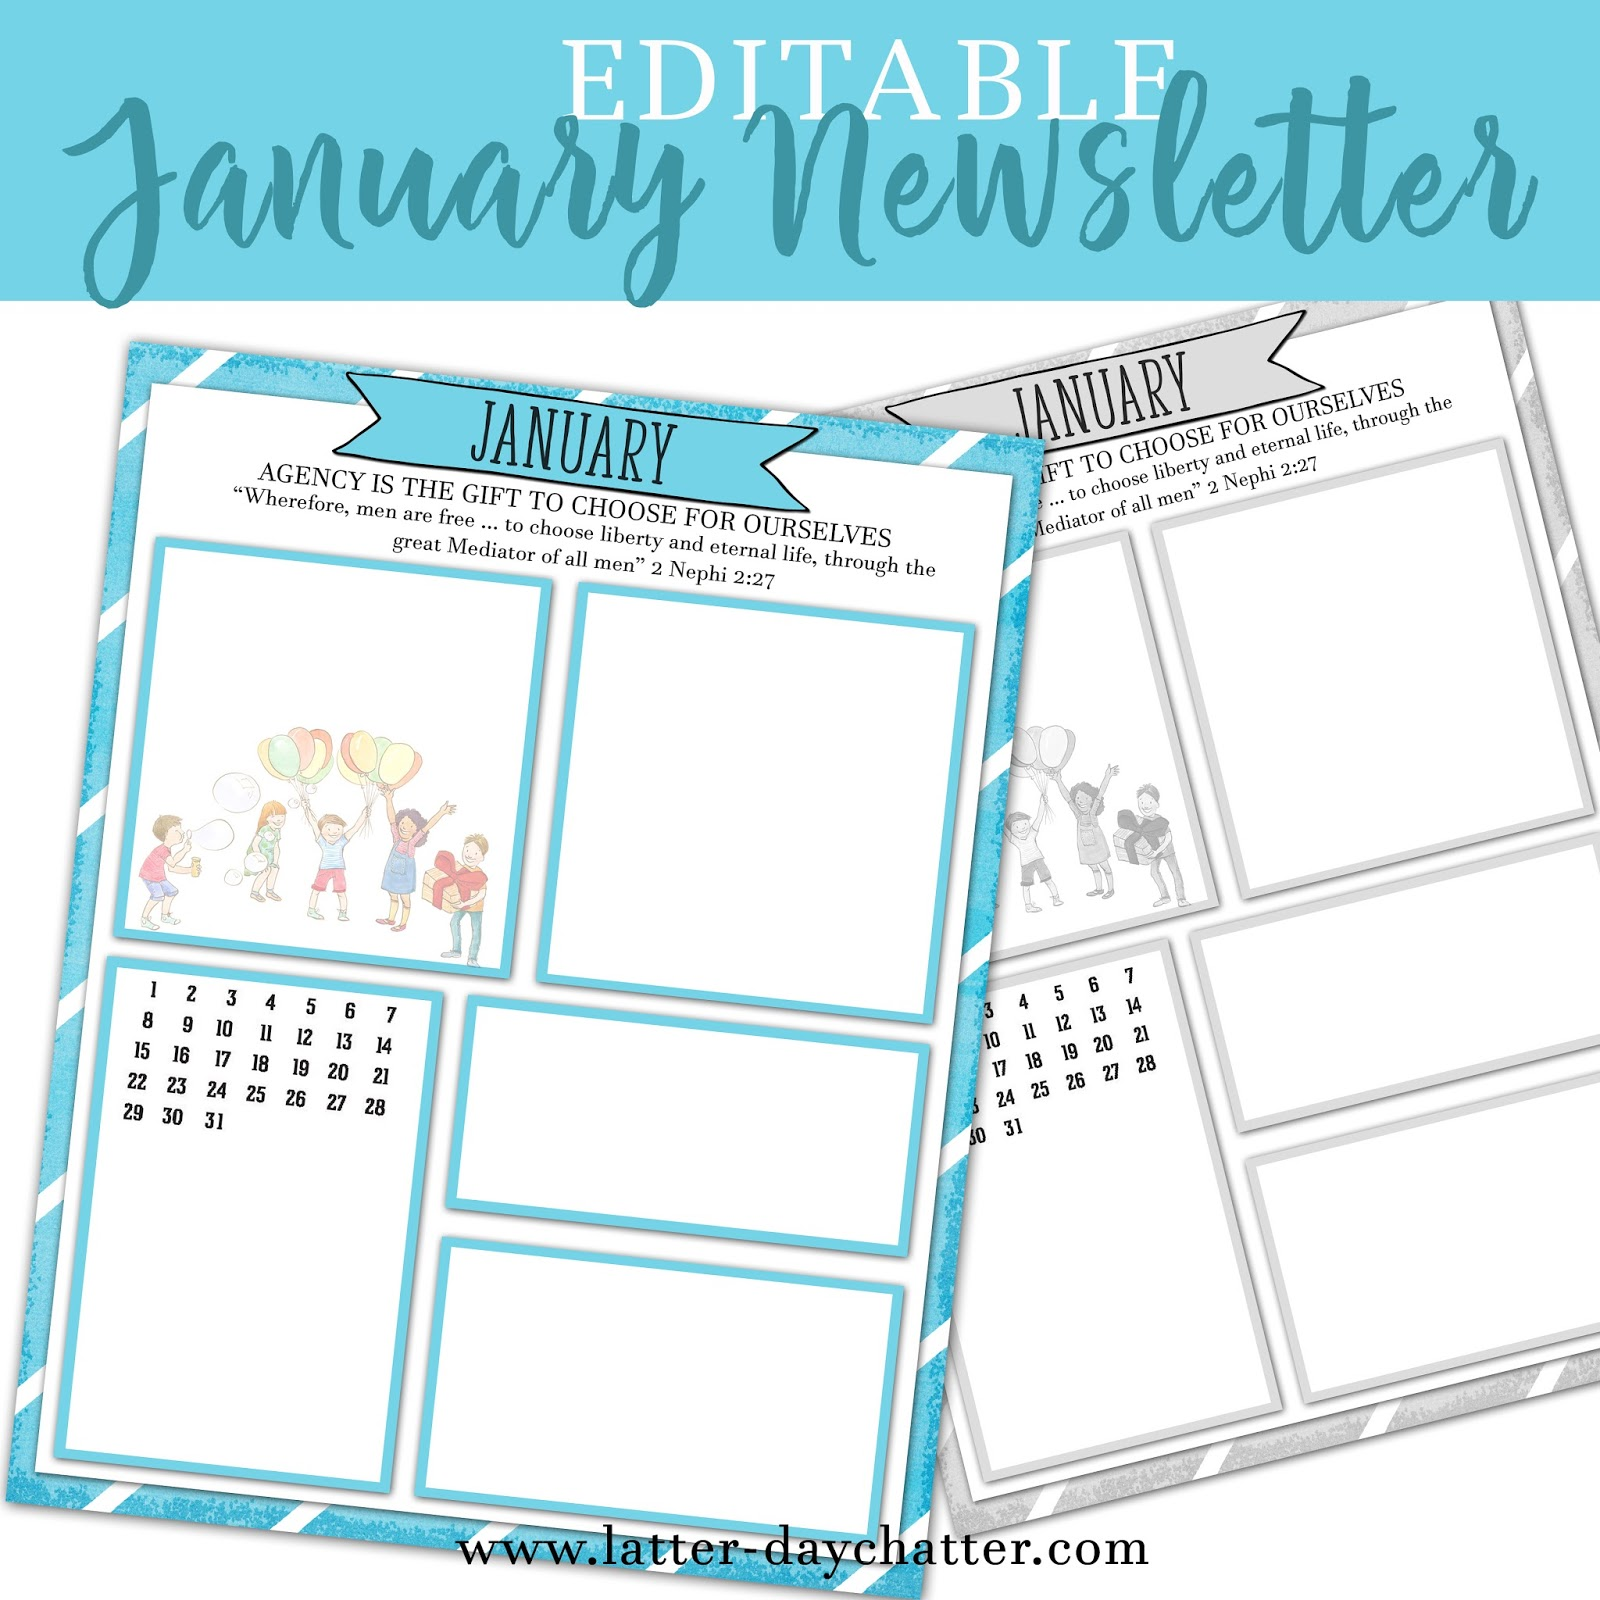 januarypreview January Kindergarten Newsletter Template on cixi angel, for plants, end year, things practice, fair use, december gingerbread,